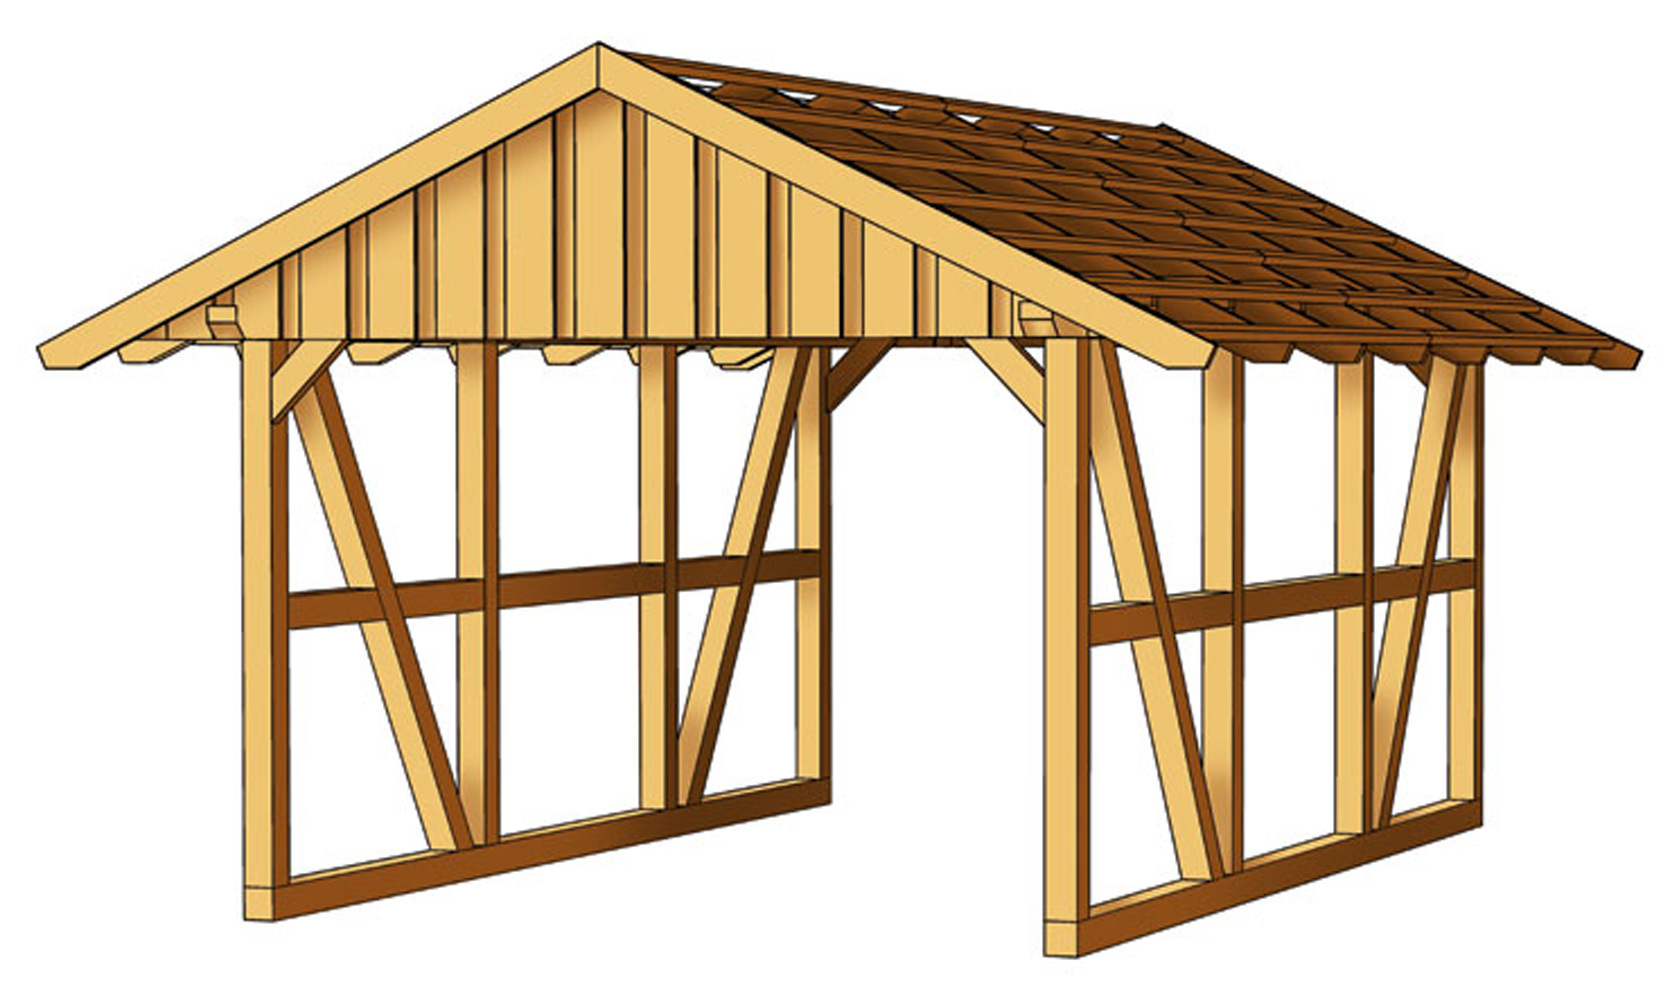 Gartenhütte Holz Single Carport Pitched Roof - Kvh - Garden House Wood Shop